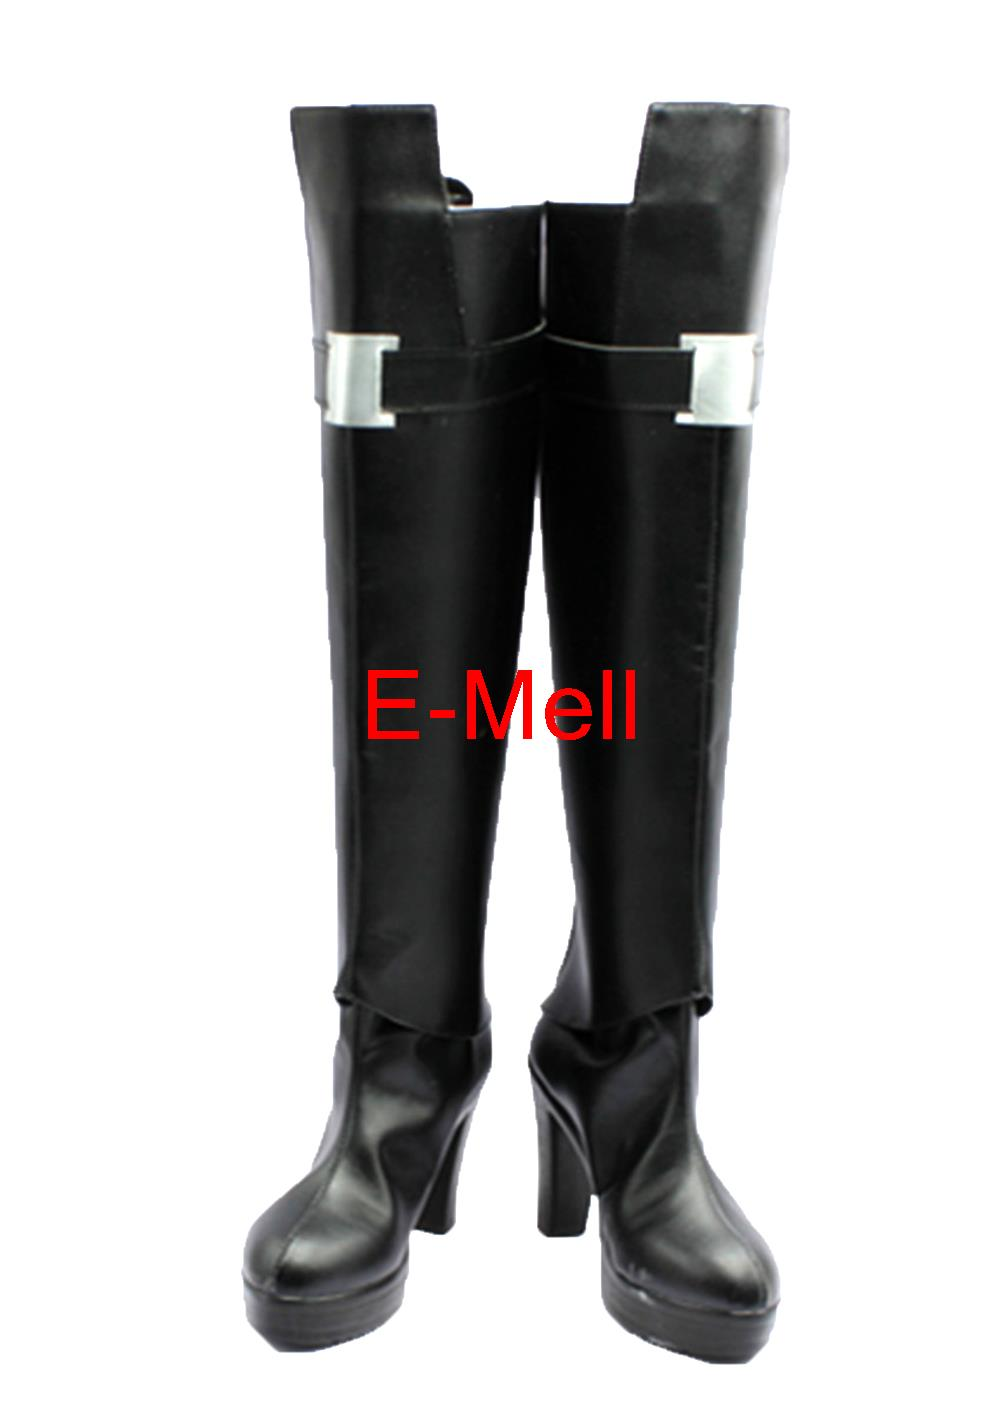 LOL Cosplay The Piltover Enforcer Vi boots font b shoes b font boot font b shoe